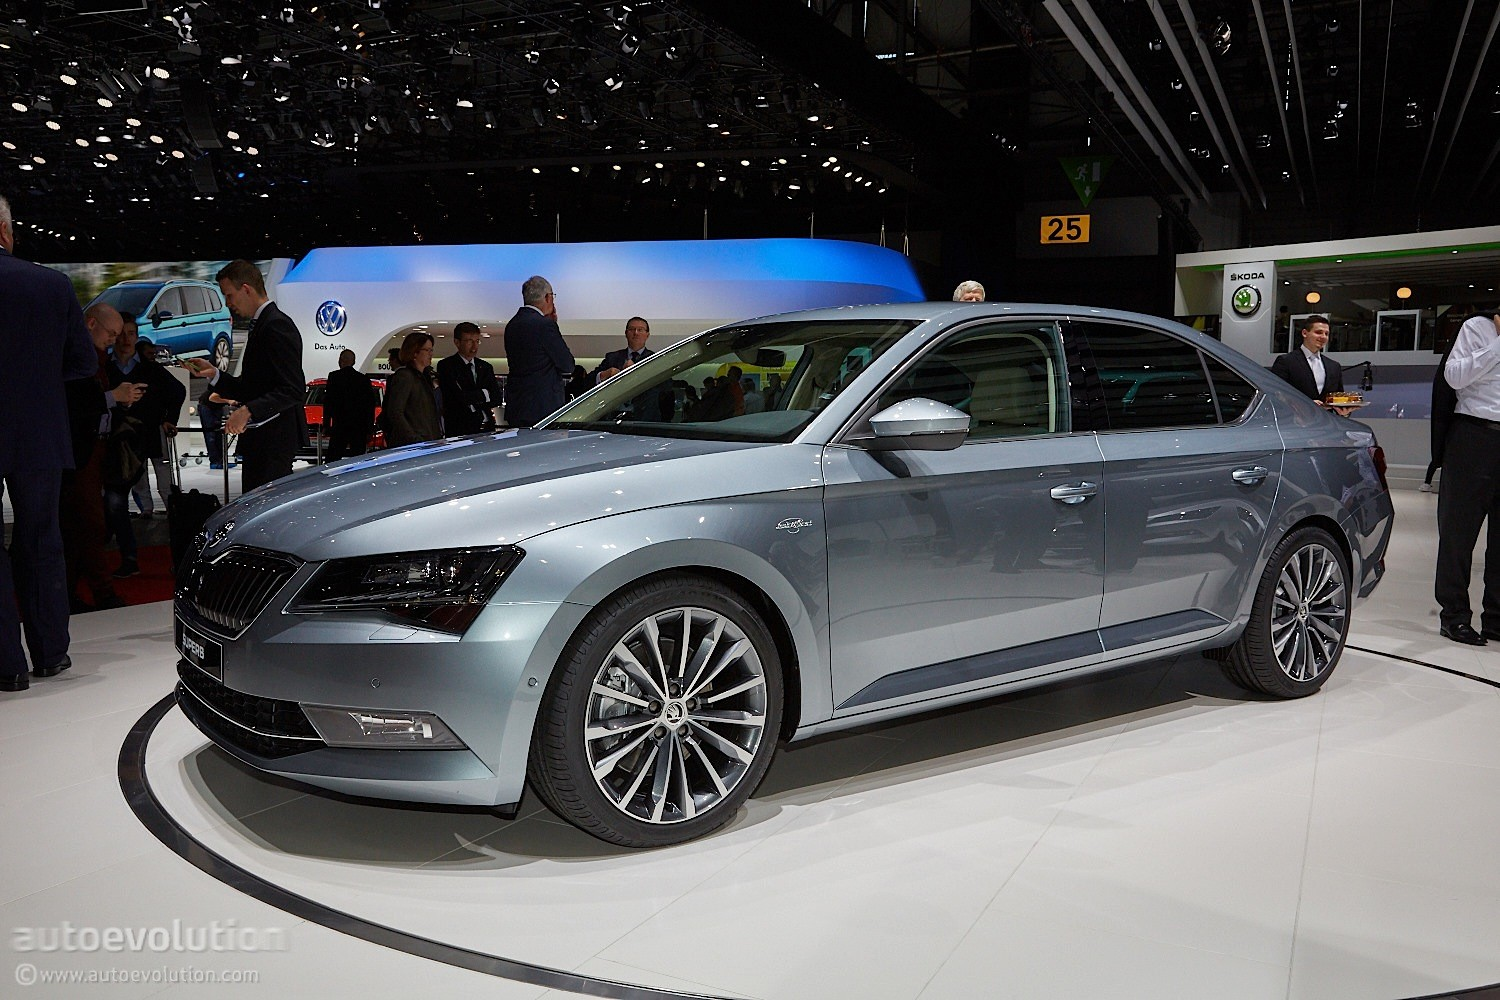 2015 Skoda Superb Is Bigger and More Luxurious at Geneva Debut - autoevolution